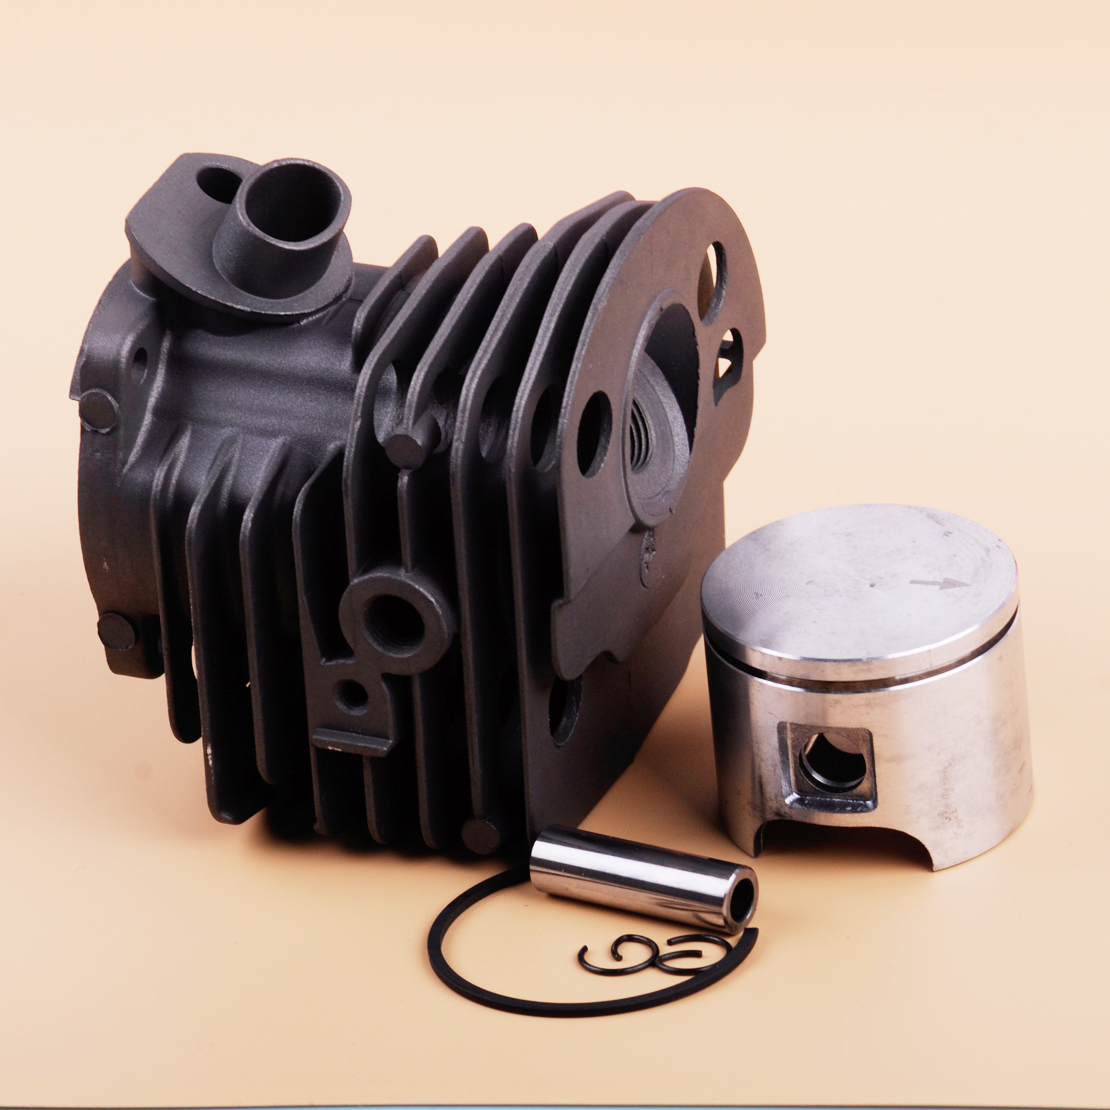 LETAOSK New 46mm Cylinder & Piston Kit 503 60 91 71 Tool Fit For Husqvarna 50 51 5555 Chainsaw